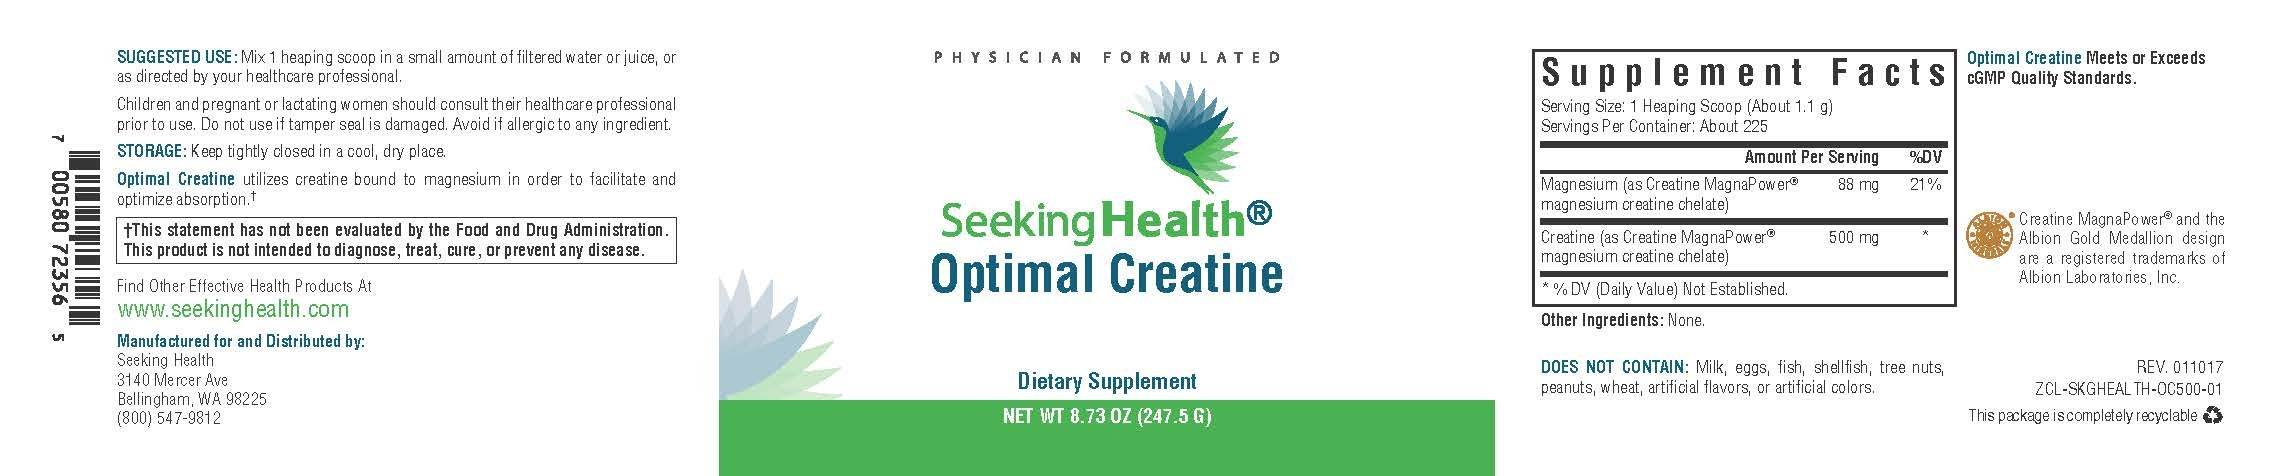 Optimal Creatine | Functional Food Powder | Provides Creatine Bound to Magnesium for Optimal Absorption | 247.5 Grams | 225 Servings Per Container | Seeking Health